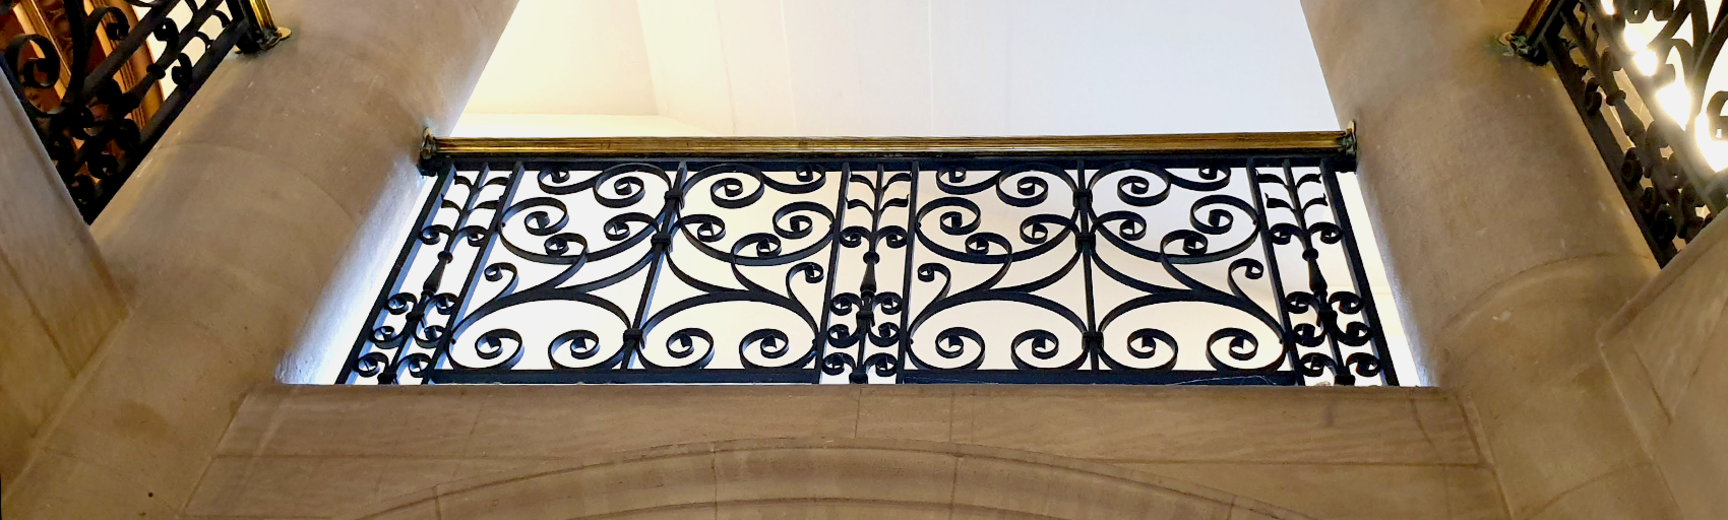 RSL stairwell and railing